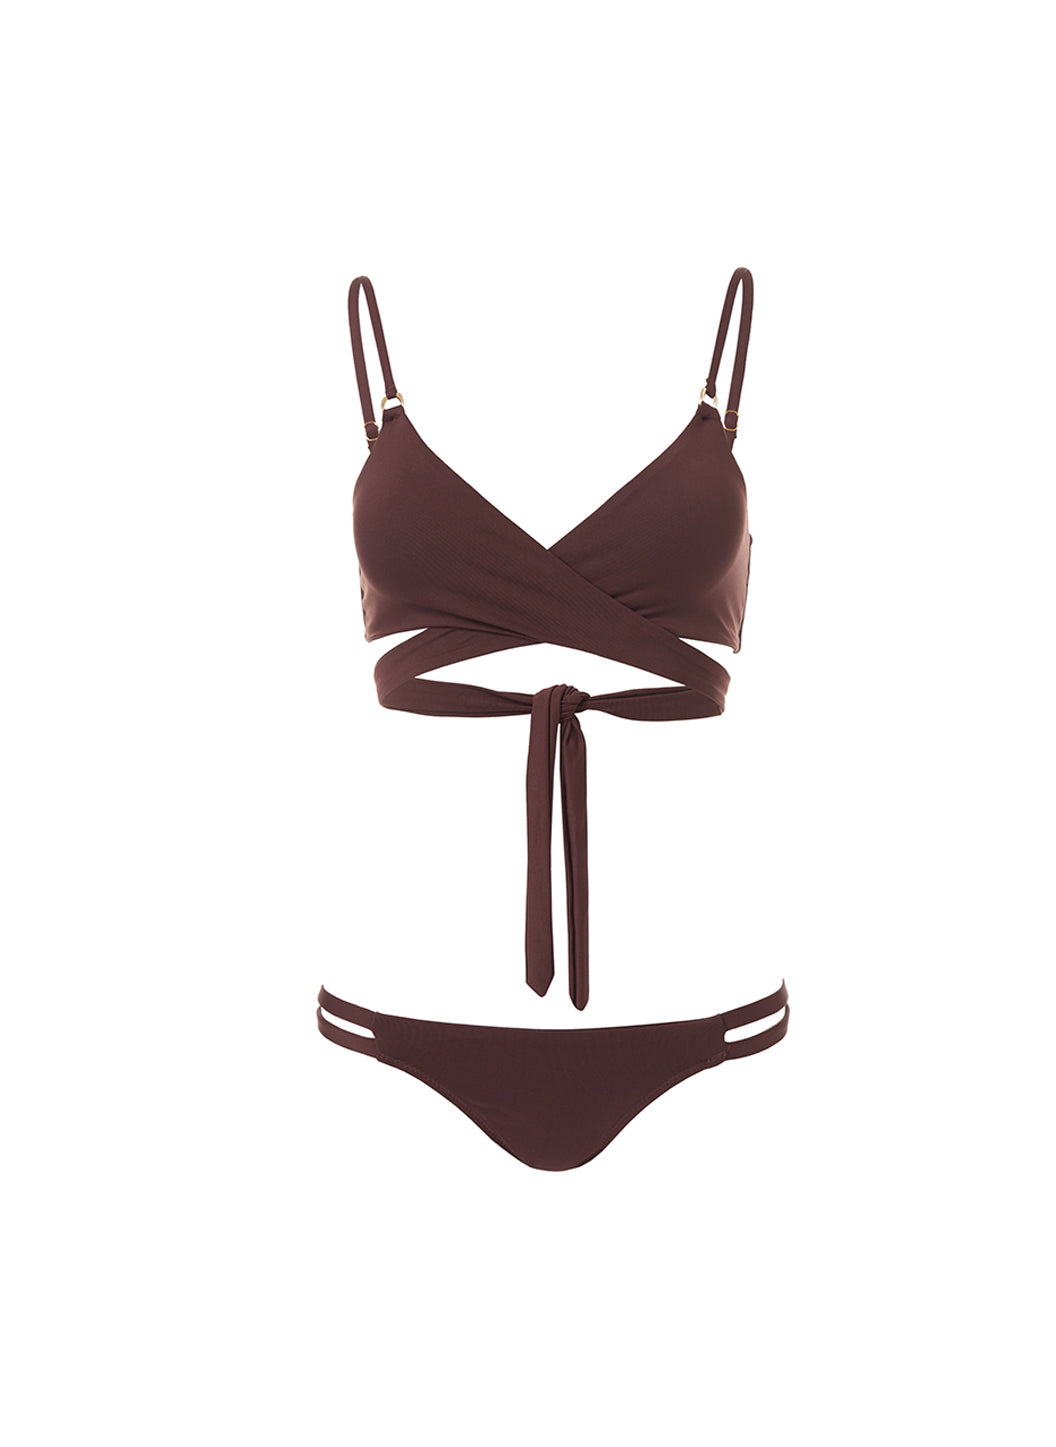 Indonesia Walnut Over The Shoulder Wrap Bikini - Melissa Odabash Swimwear